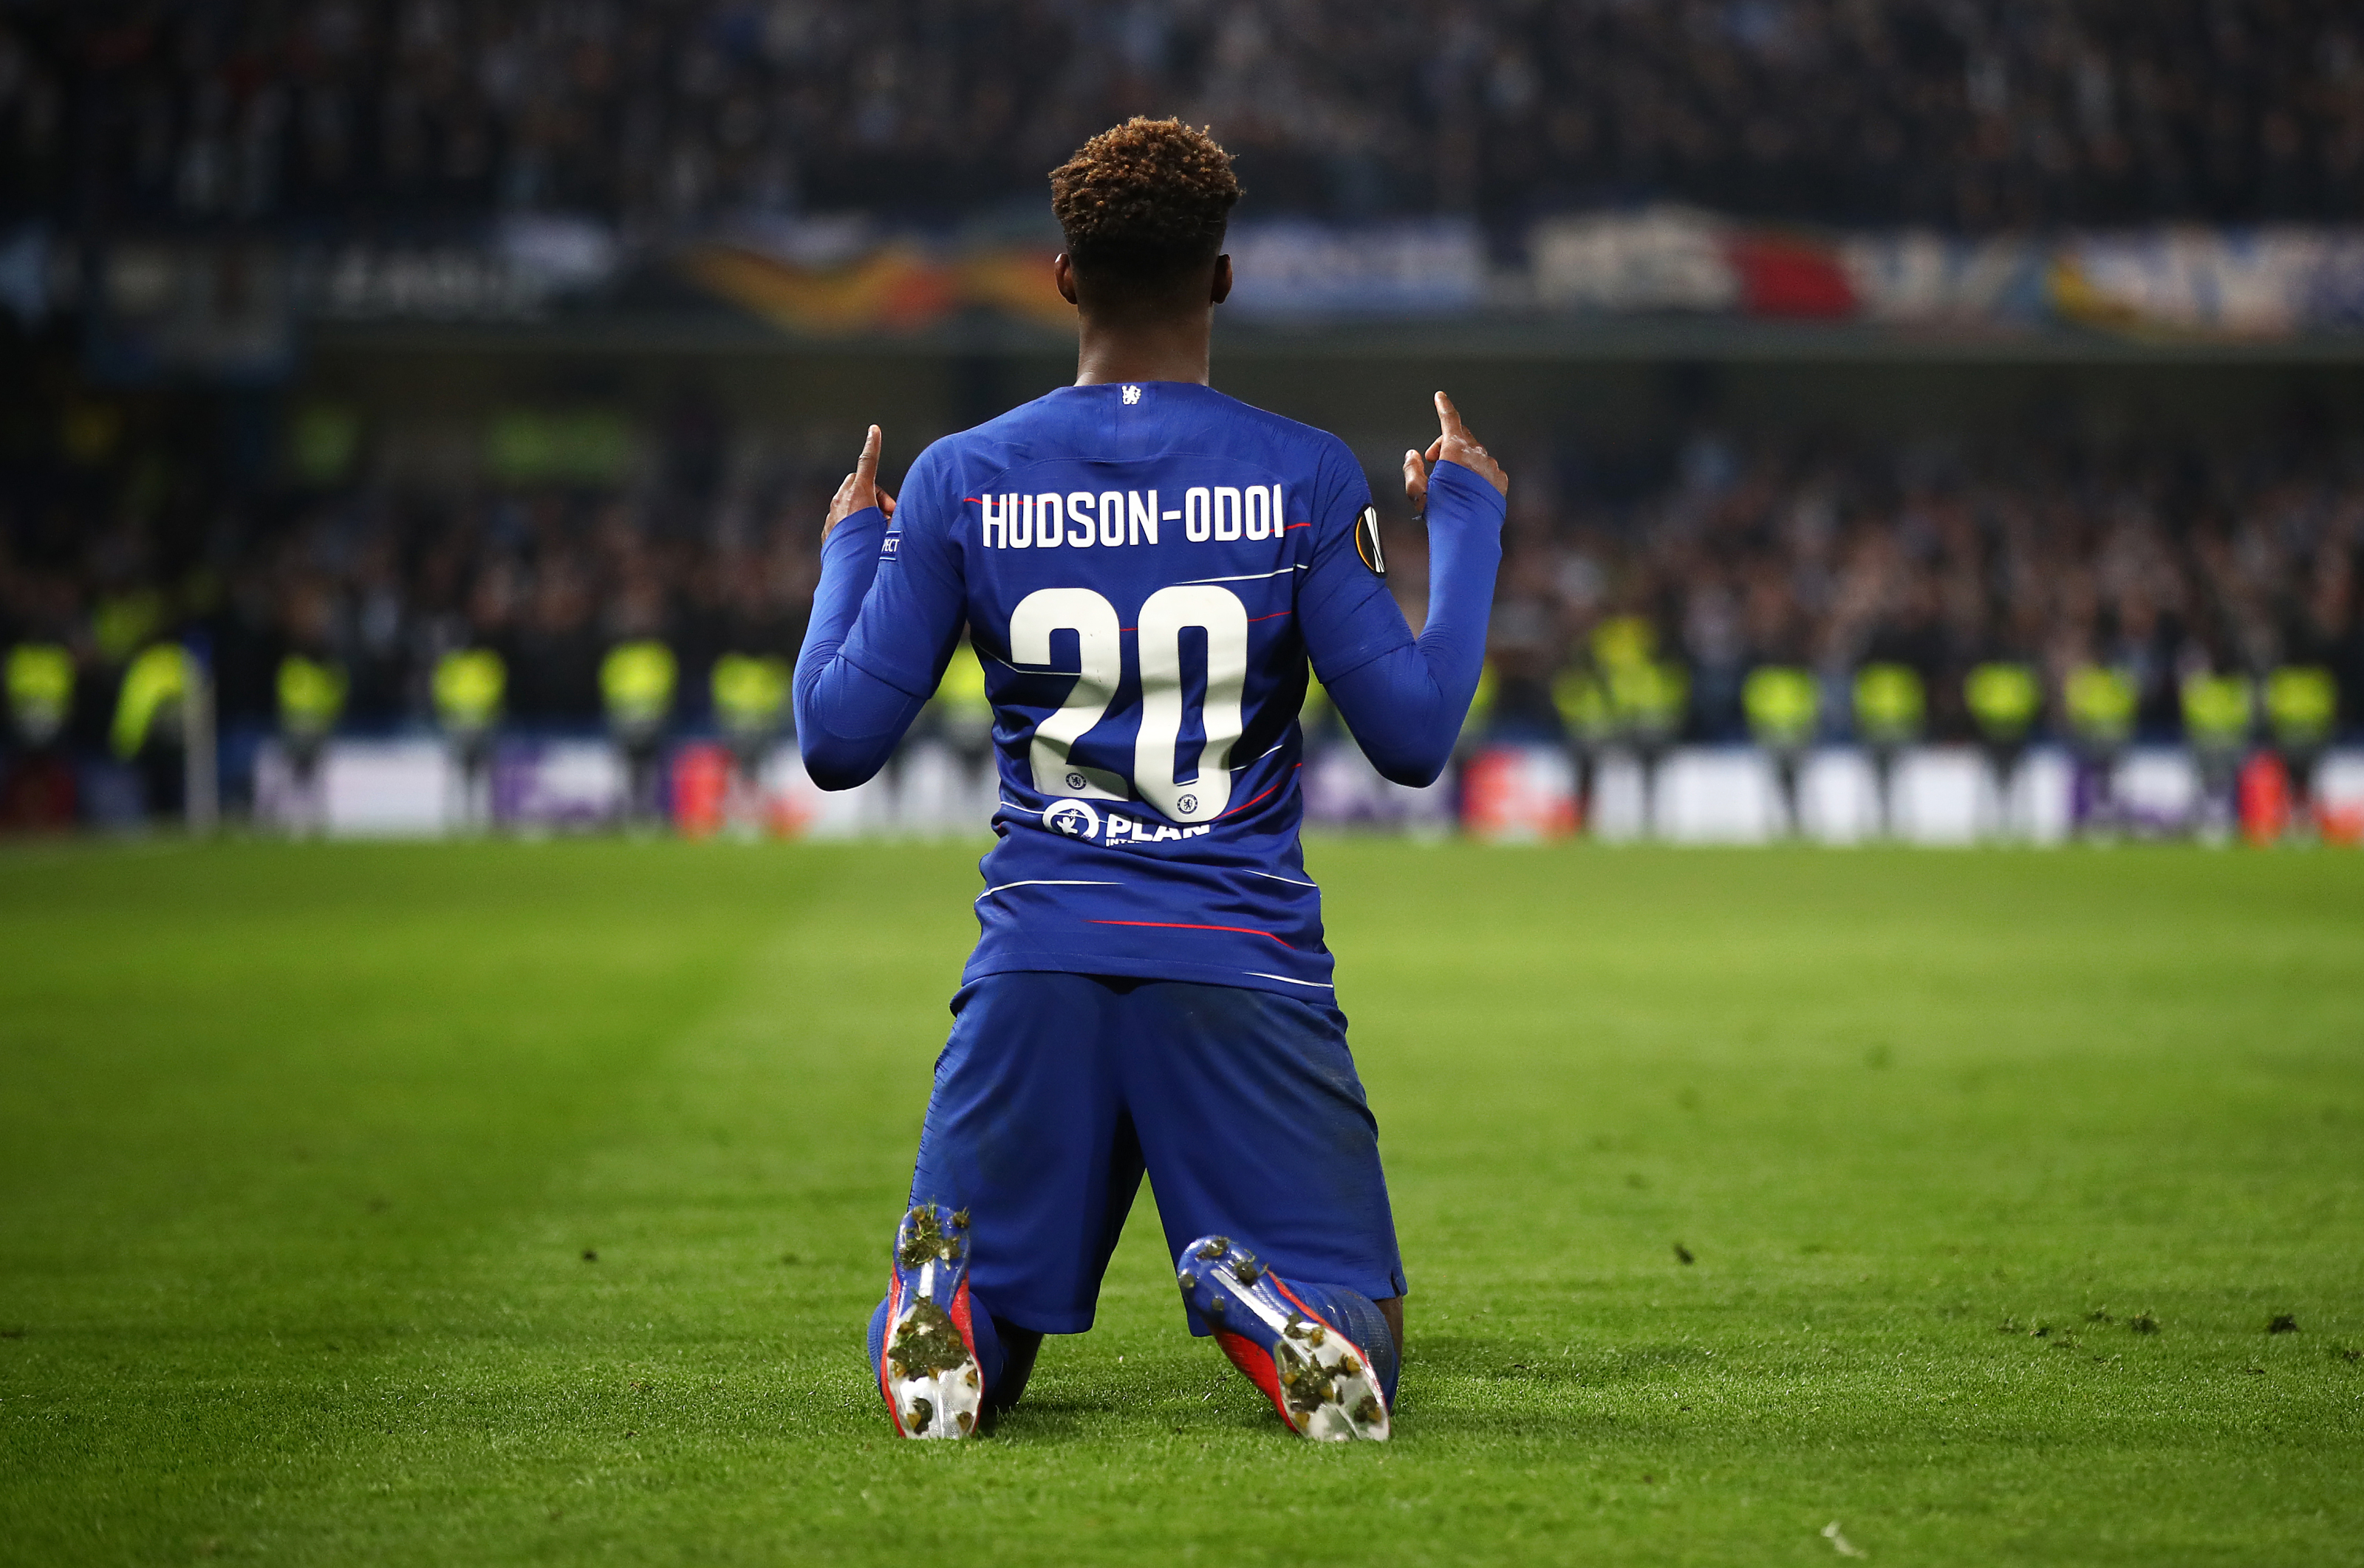 Chelsea and Hudson-Odoi nowhere close to justifying £200,000 per week